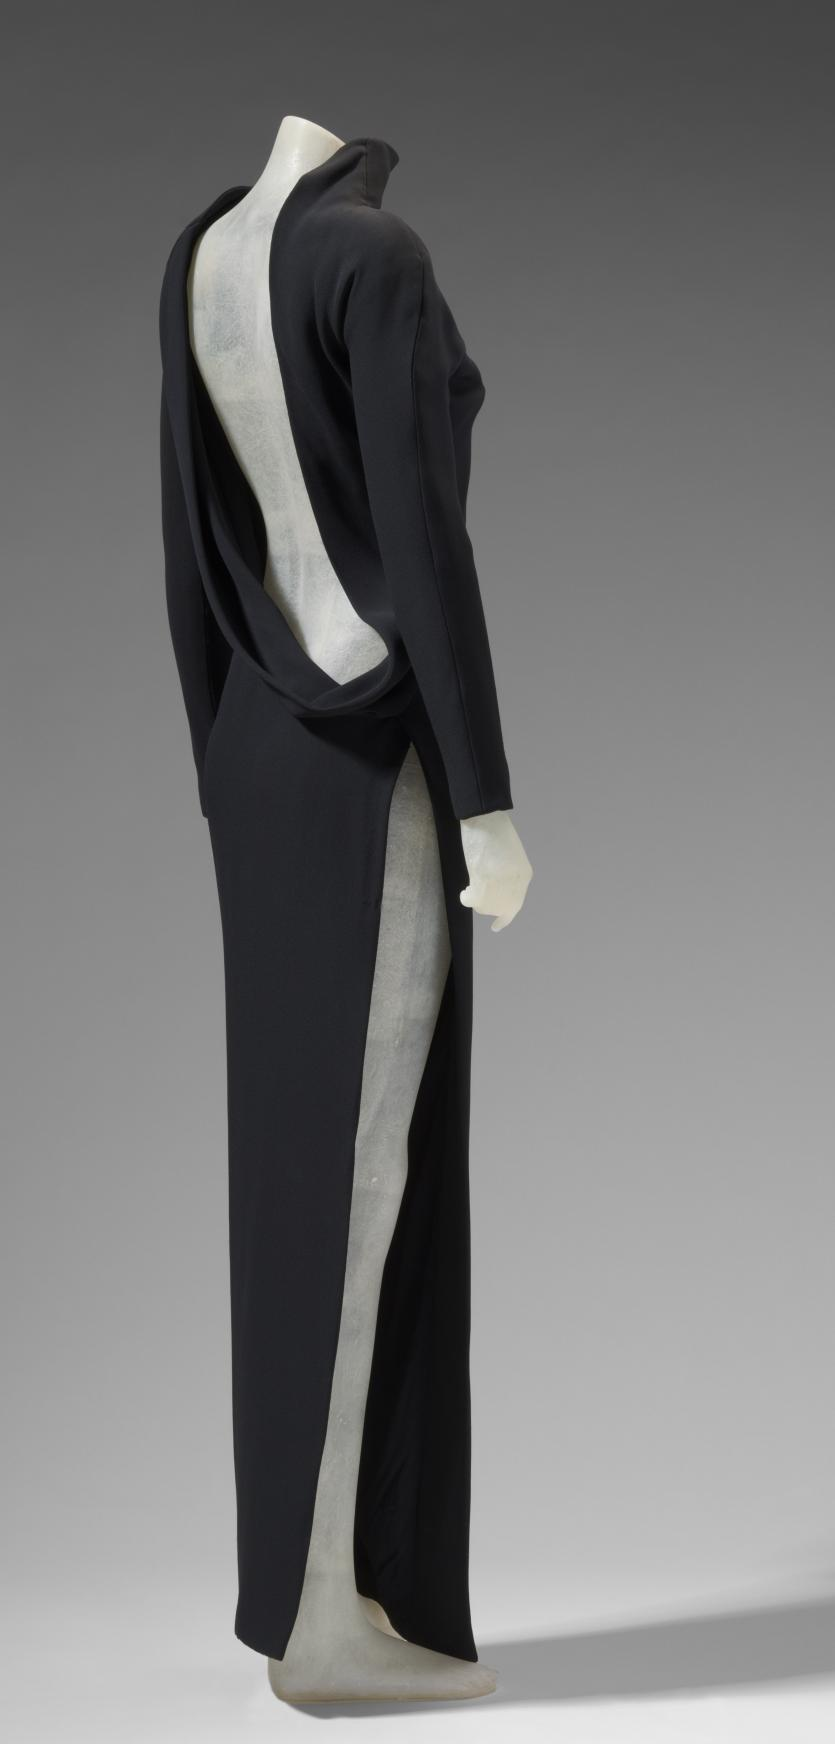 Exit\' evening dress | GIANNI VERSACE, Milan (fashion house); Gianni ...